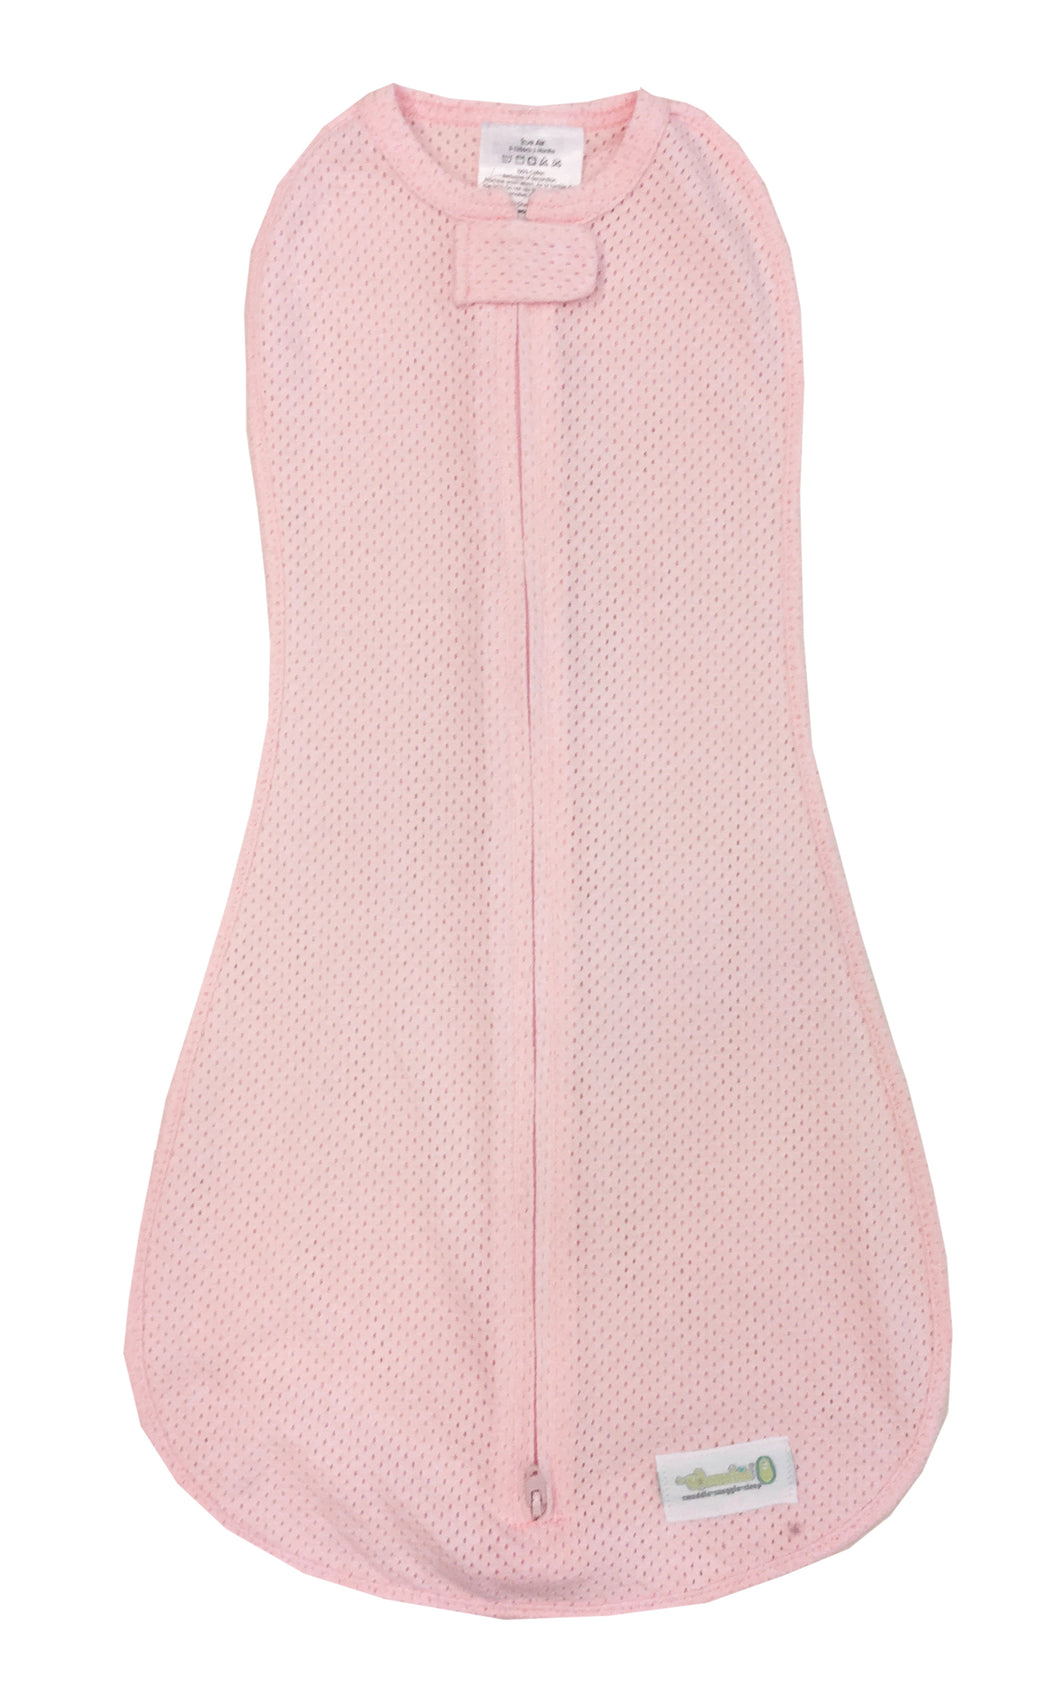 Woombie Pink Old Fashioned Air-Wrap